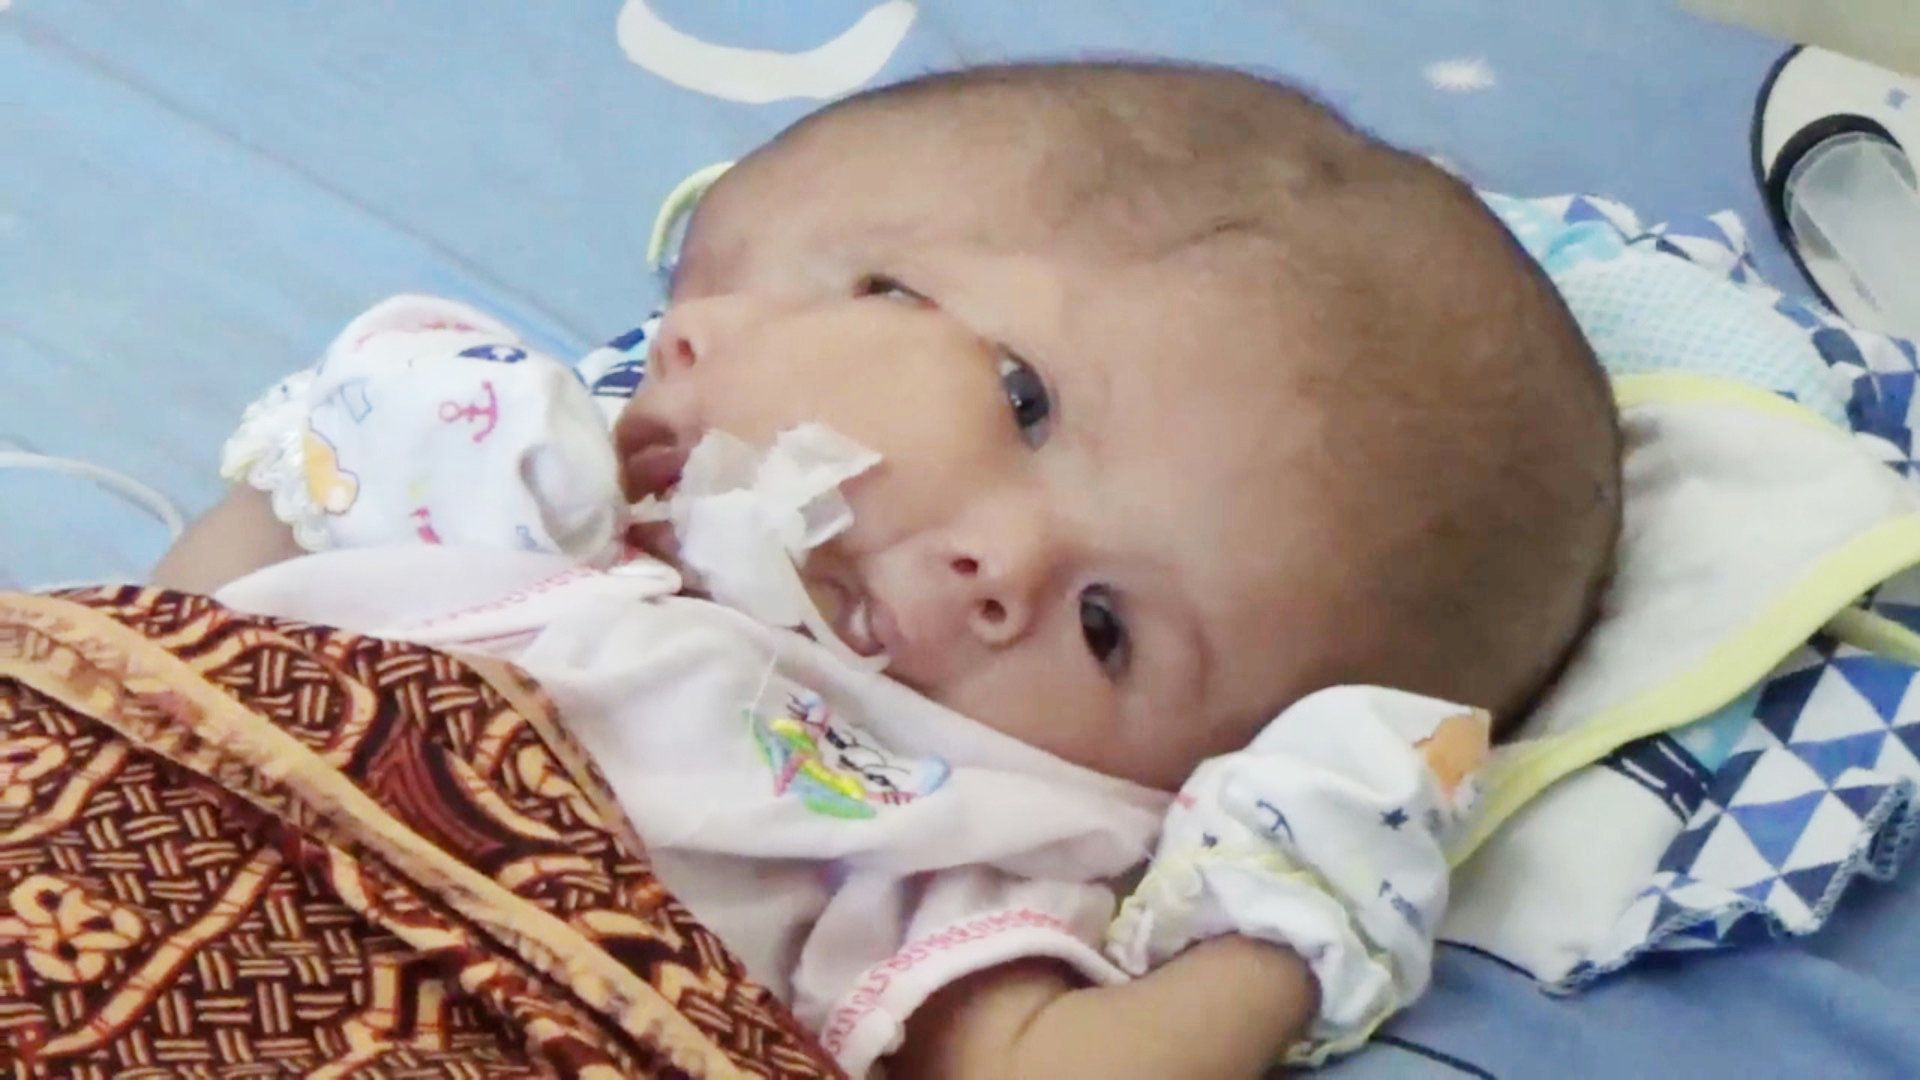 Pic by Yuli Sepri/ Caters News: (Pictured: Here is Gilang Andika born with extra brain of his unborn sibling from Indonesia). An Indonesian couple is desperately hoping for a miracle to save their two-month-old baby boy born with two faces and a life-threatening brain condition. Gilang Andika was born to Erlinasari, 30, through a caesarean section at a private hospital in Batam, in Indonesia on early May. Although Gilang has one body, a pair of arms and legs, in the head, there is an extra brain of his unborn sibling. He also suffers from Hydrocephalus, a condition in which fluid starts building up in brain causing long-term brain damage, learning disabilities, speech, vision or memory problems and eventually leads to death. SEE CATERS COPY